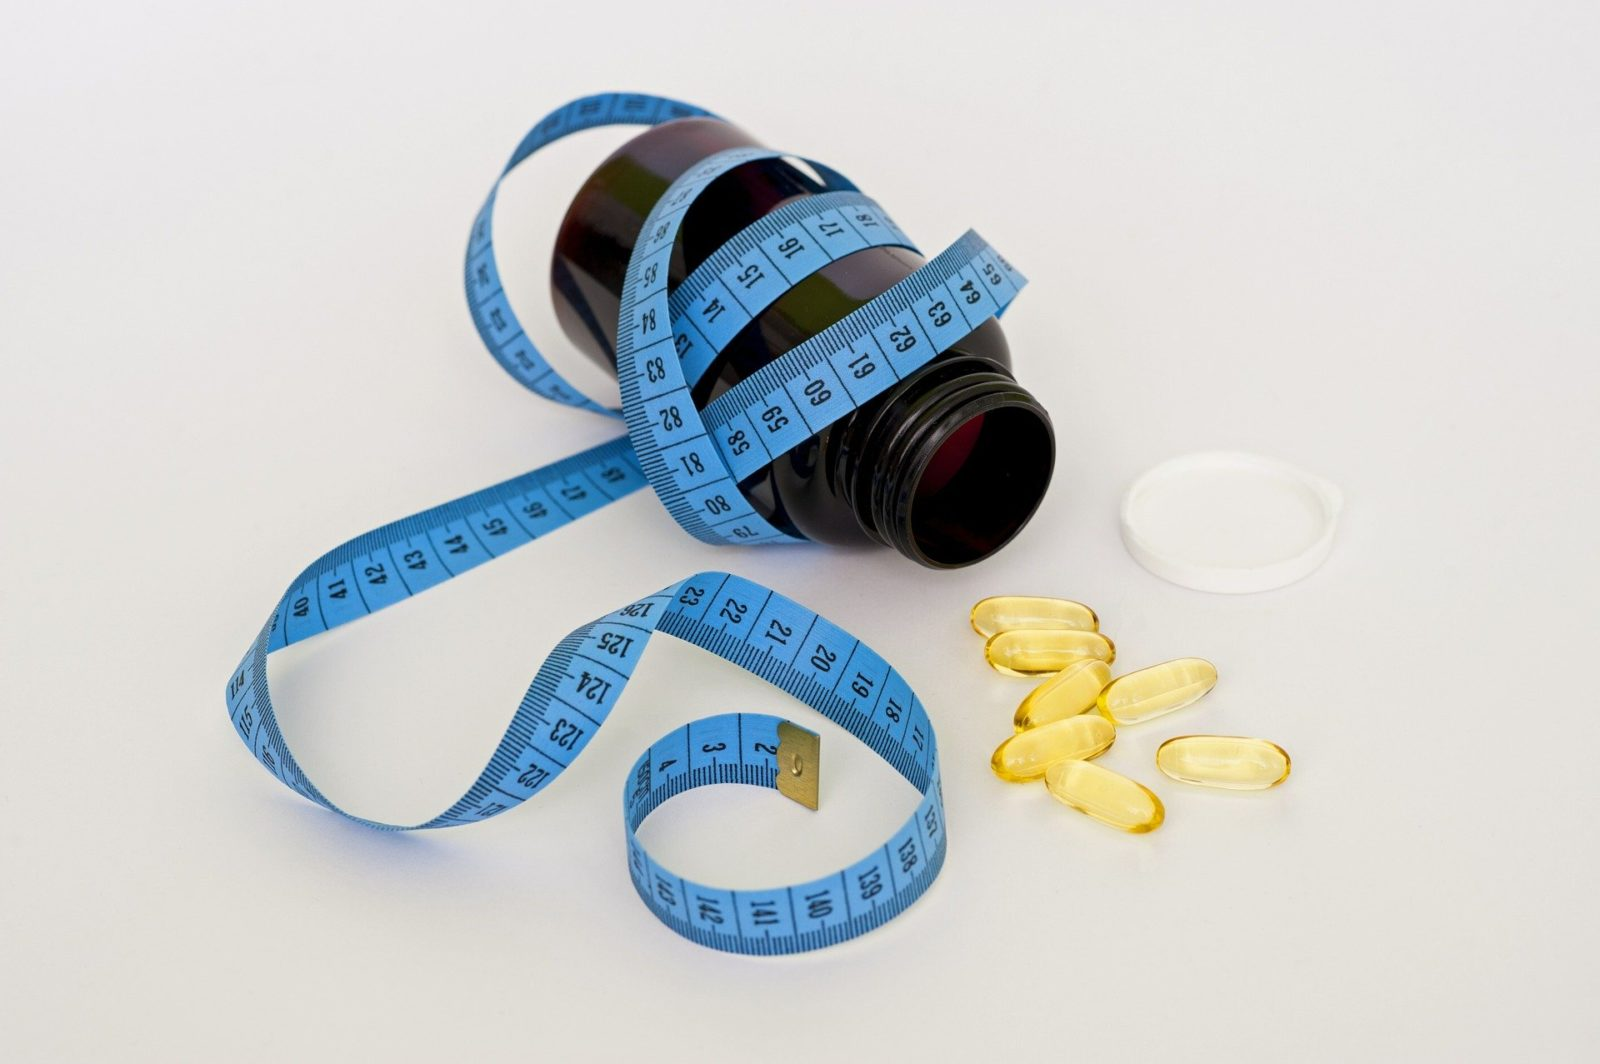 WHICH WEIGHT LOSS PILL IS THE BEST